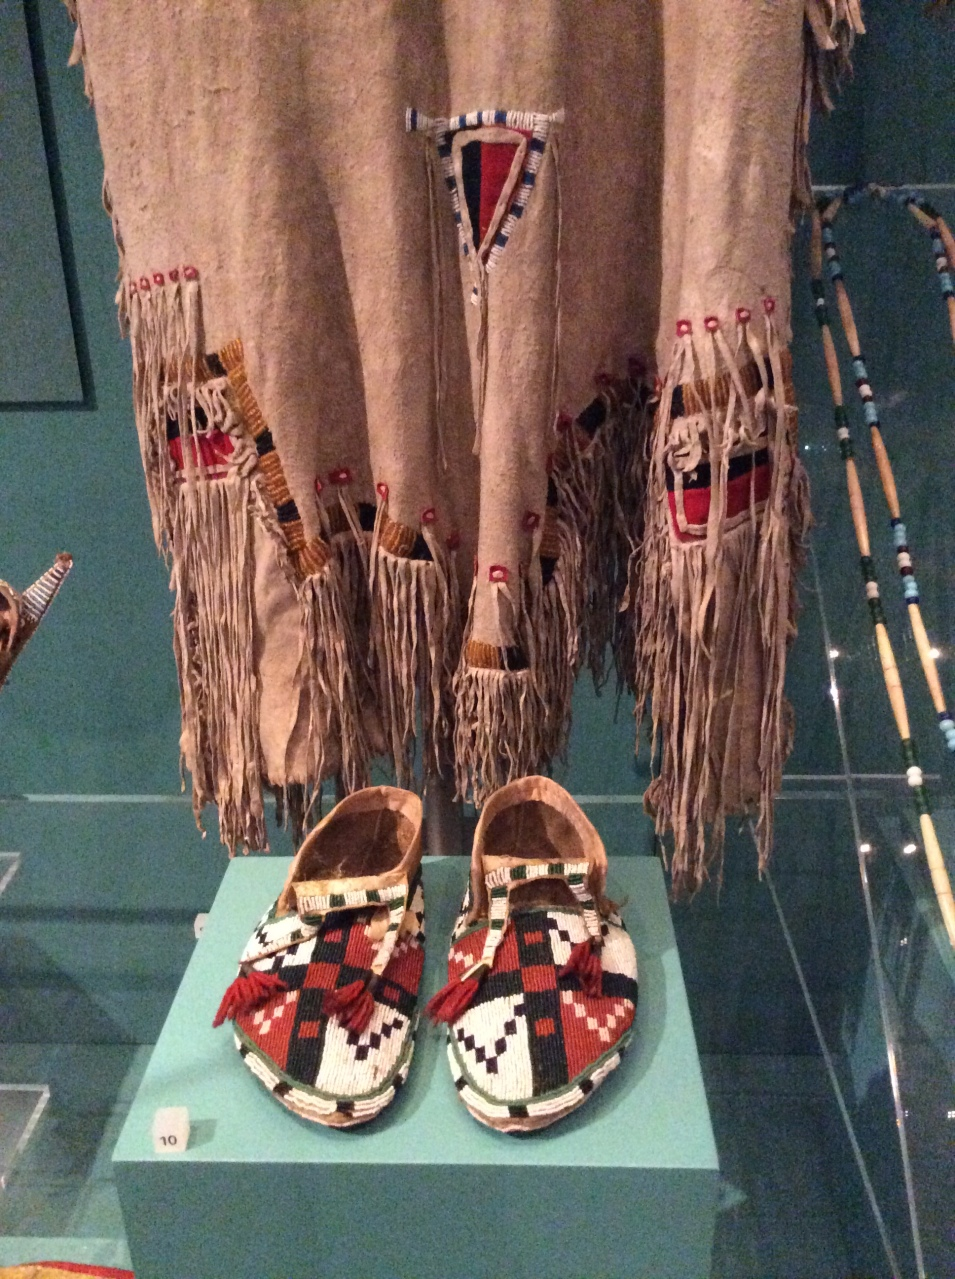 Blackfoot Beaded Dress and Kainai moccasins closeup, National Museum of Scotland